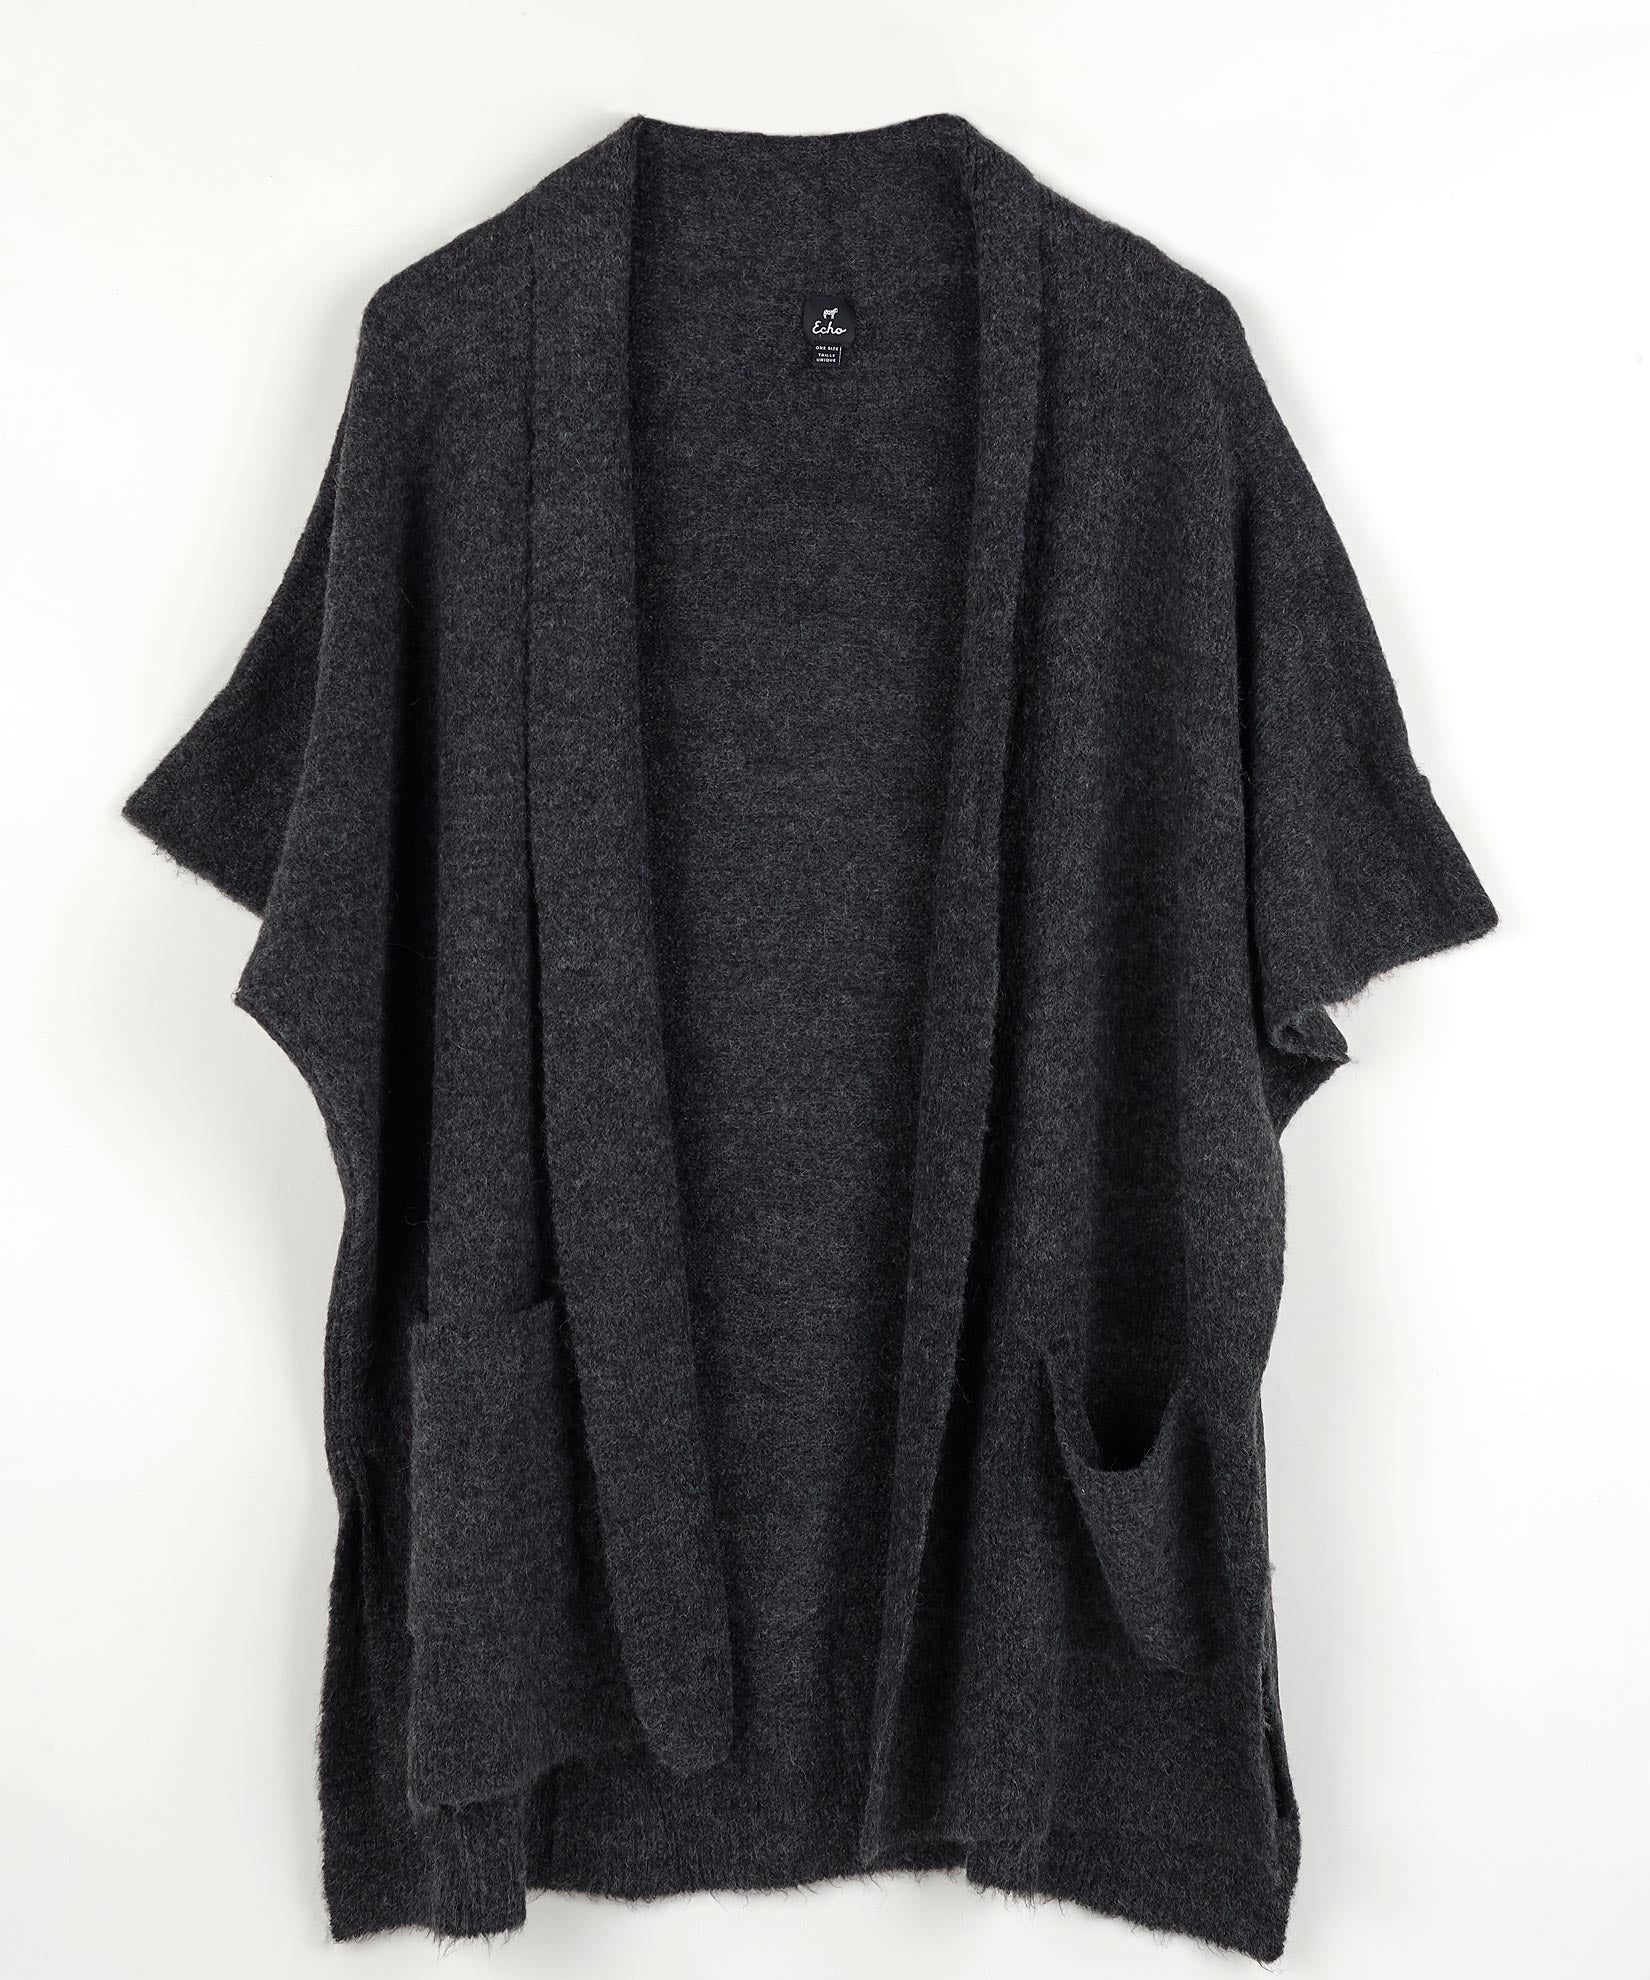 Black - Cardigan With Pockets